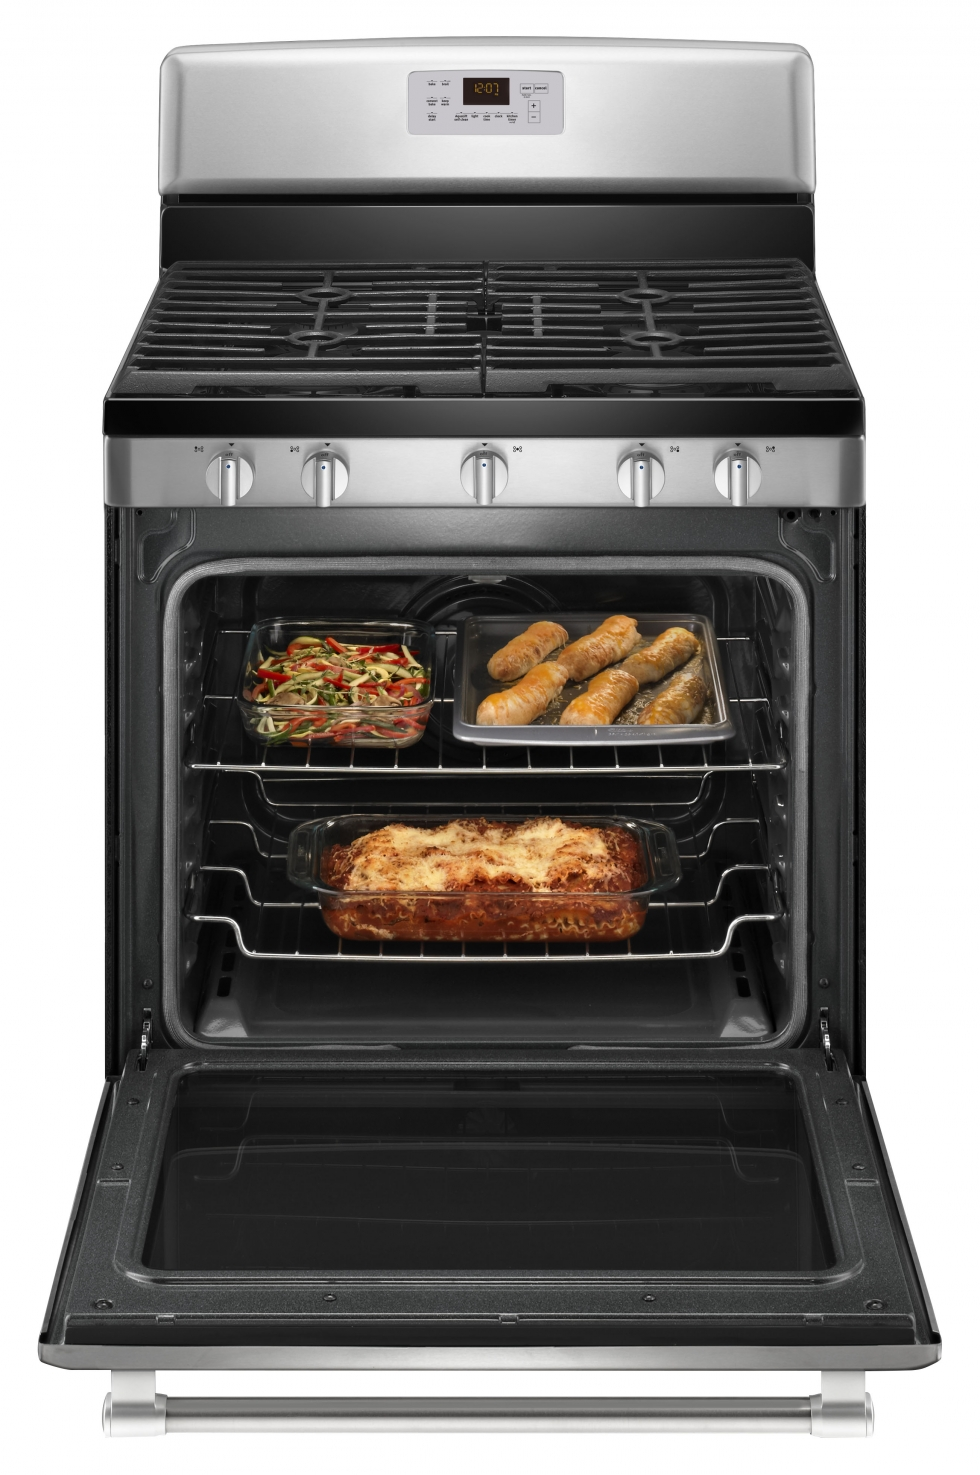 Maytag GAS RANGE WITH CONVECTION OVEN Stainless